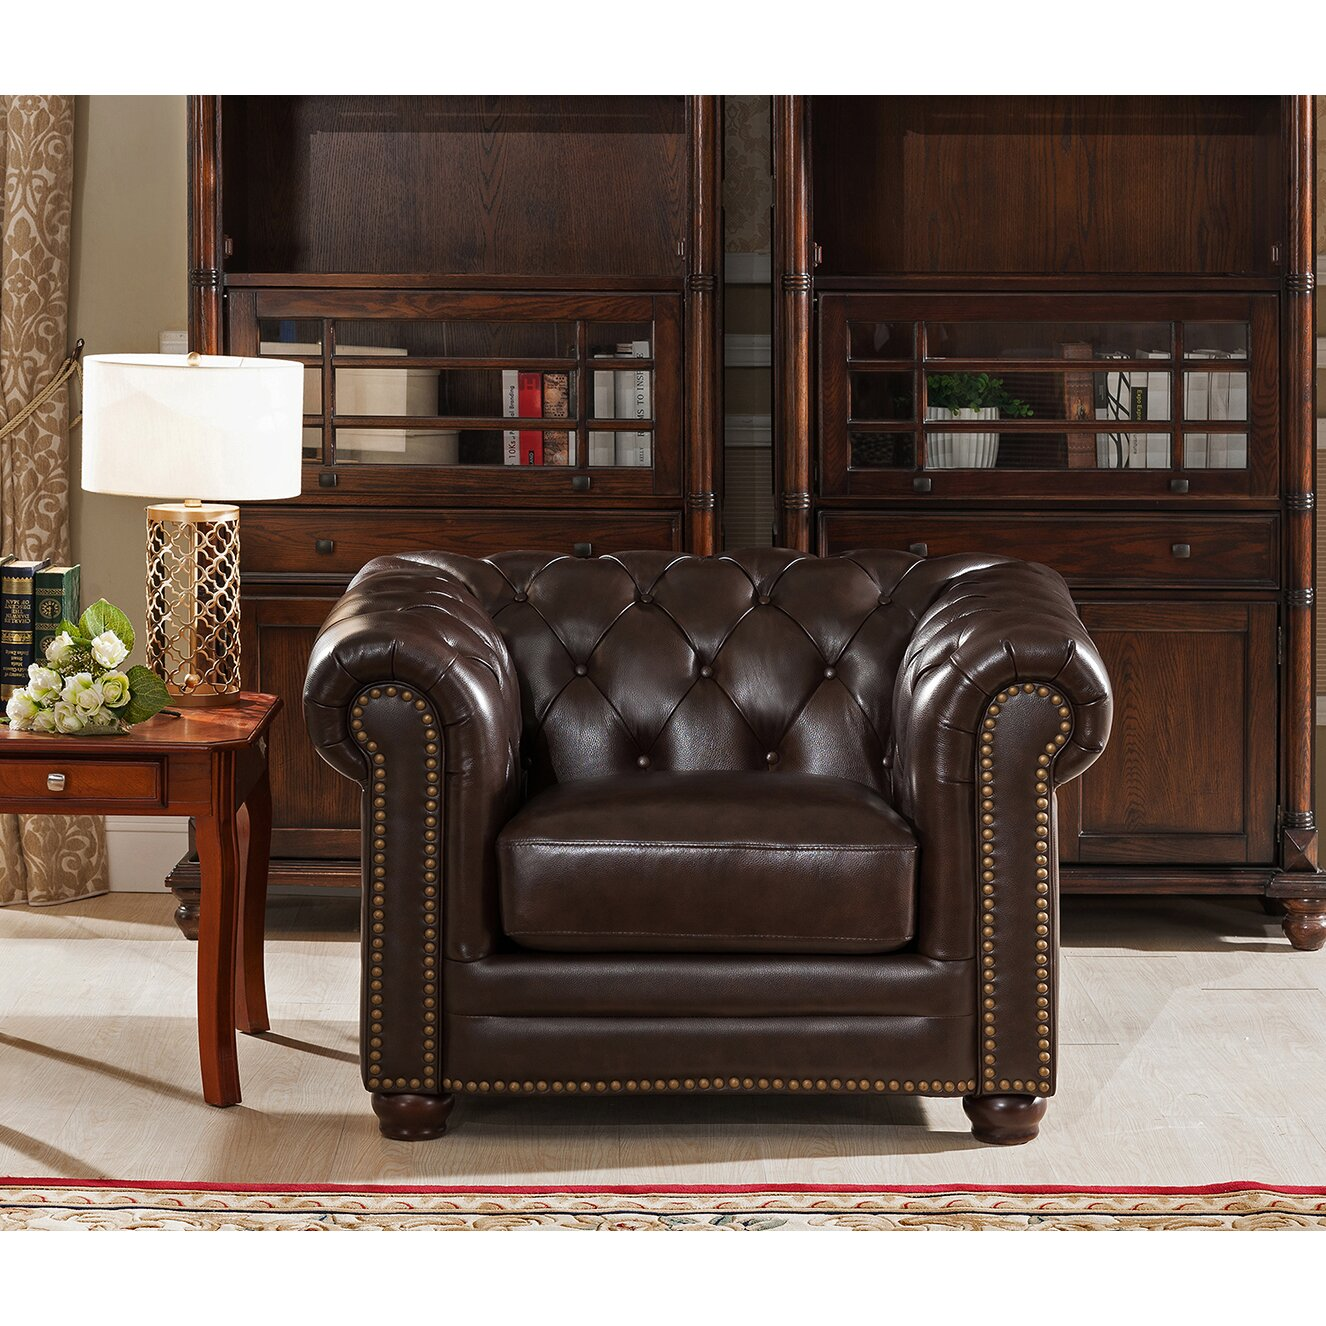 Ashley Furniture Slc: Amax Kensington Top Grain Leather Chesterfield Sofa